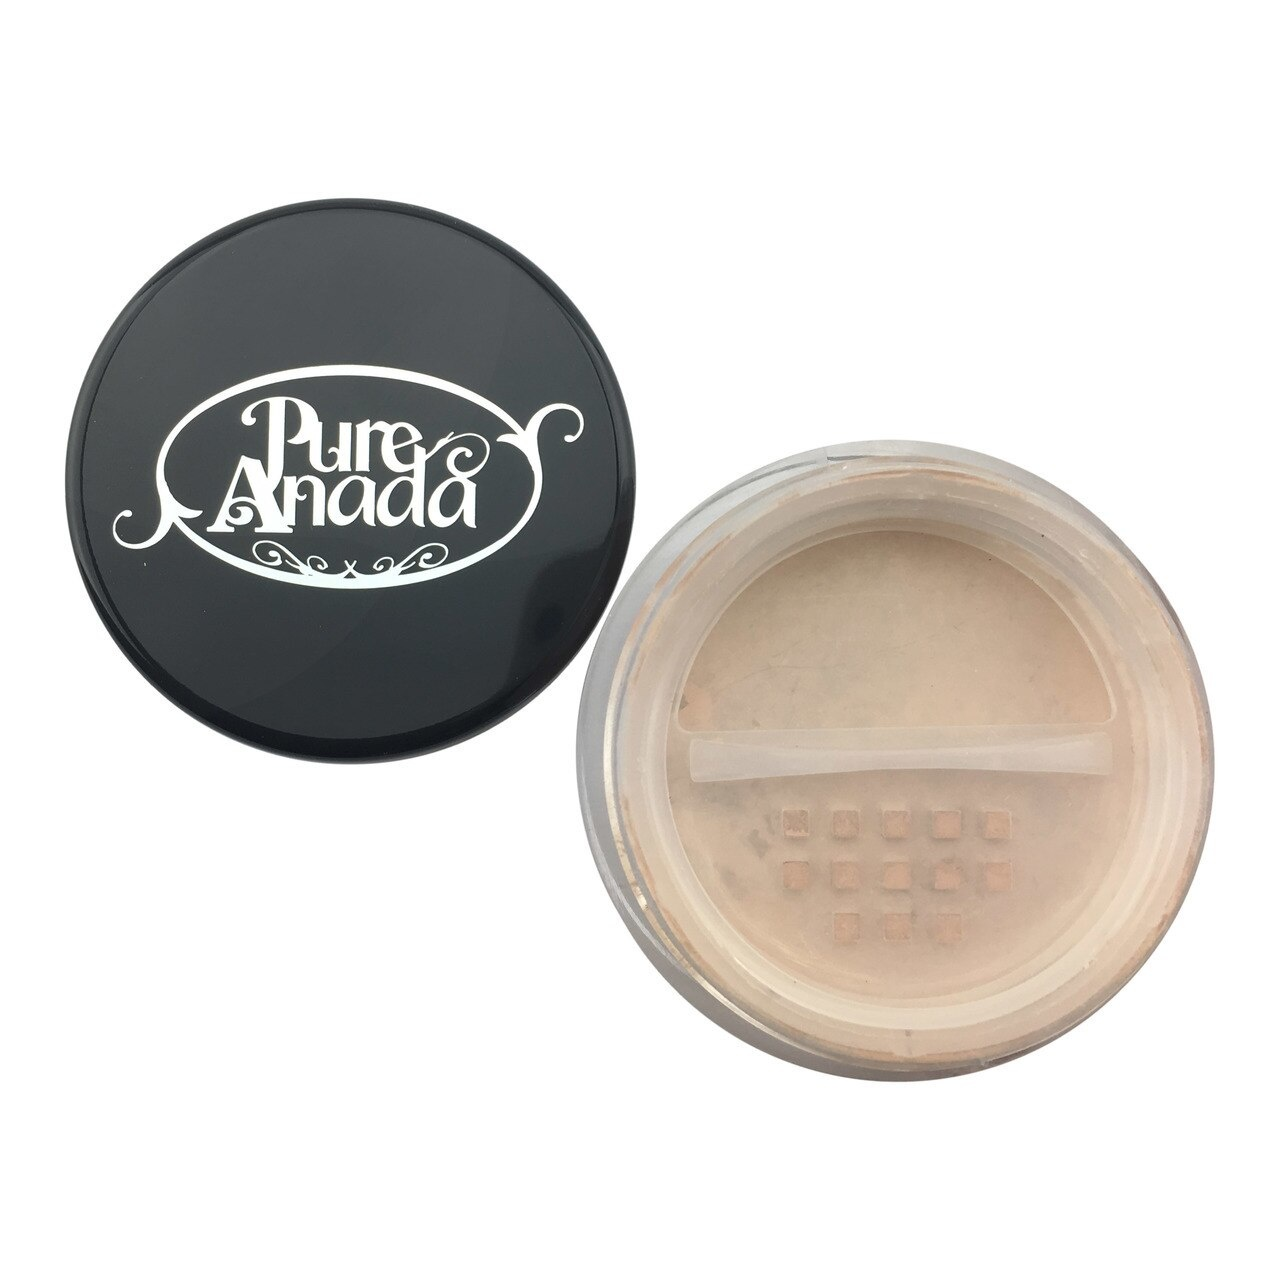 Loose Mineral Foundation - Glacial Sunrise: Light (Cool)-2